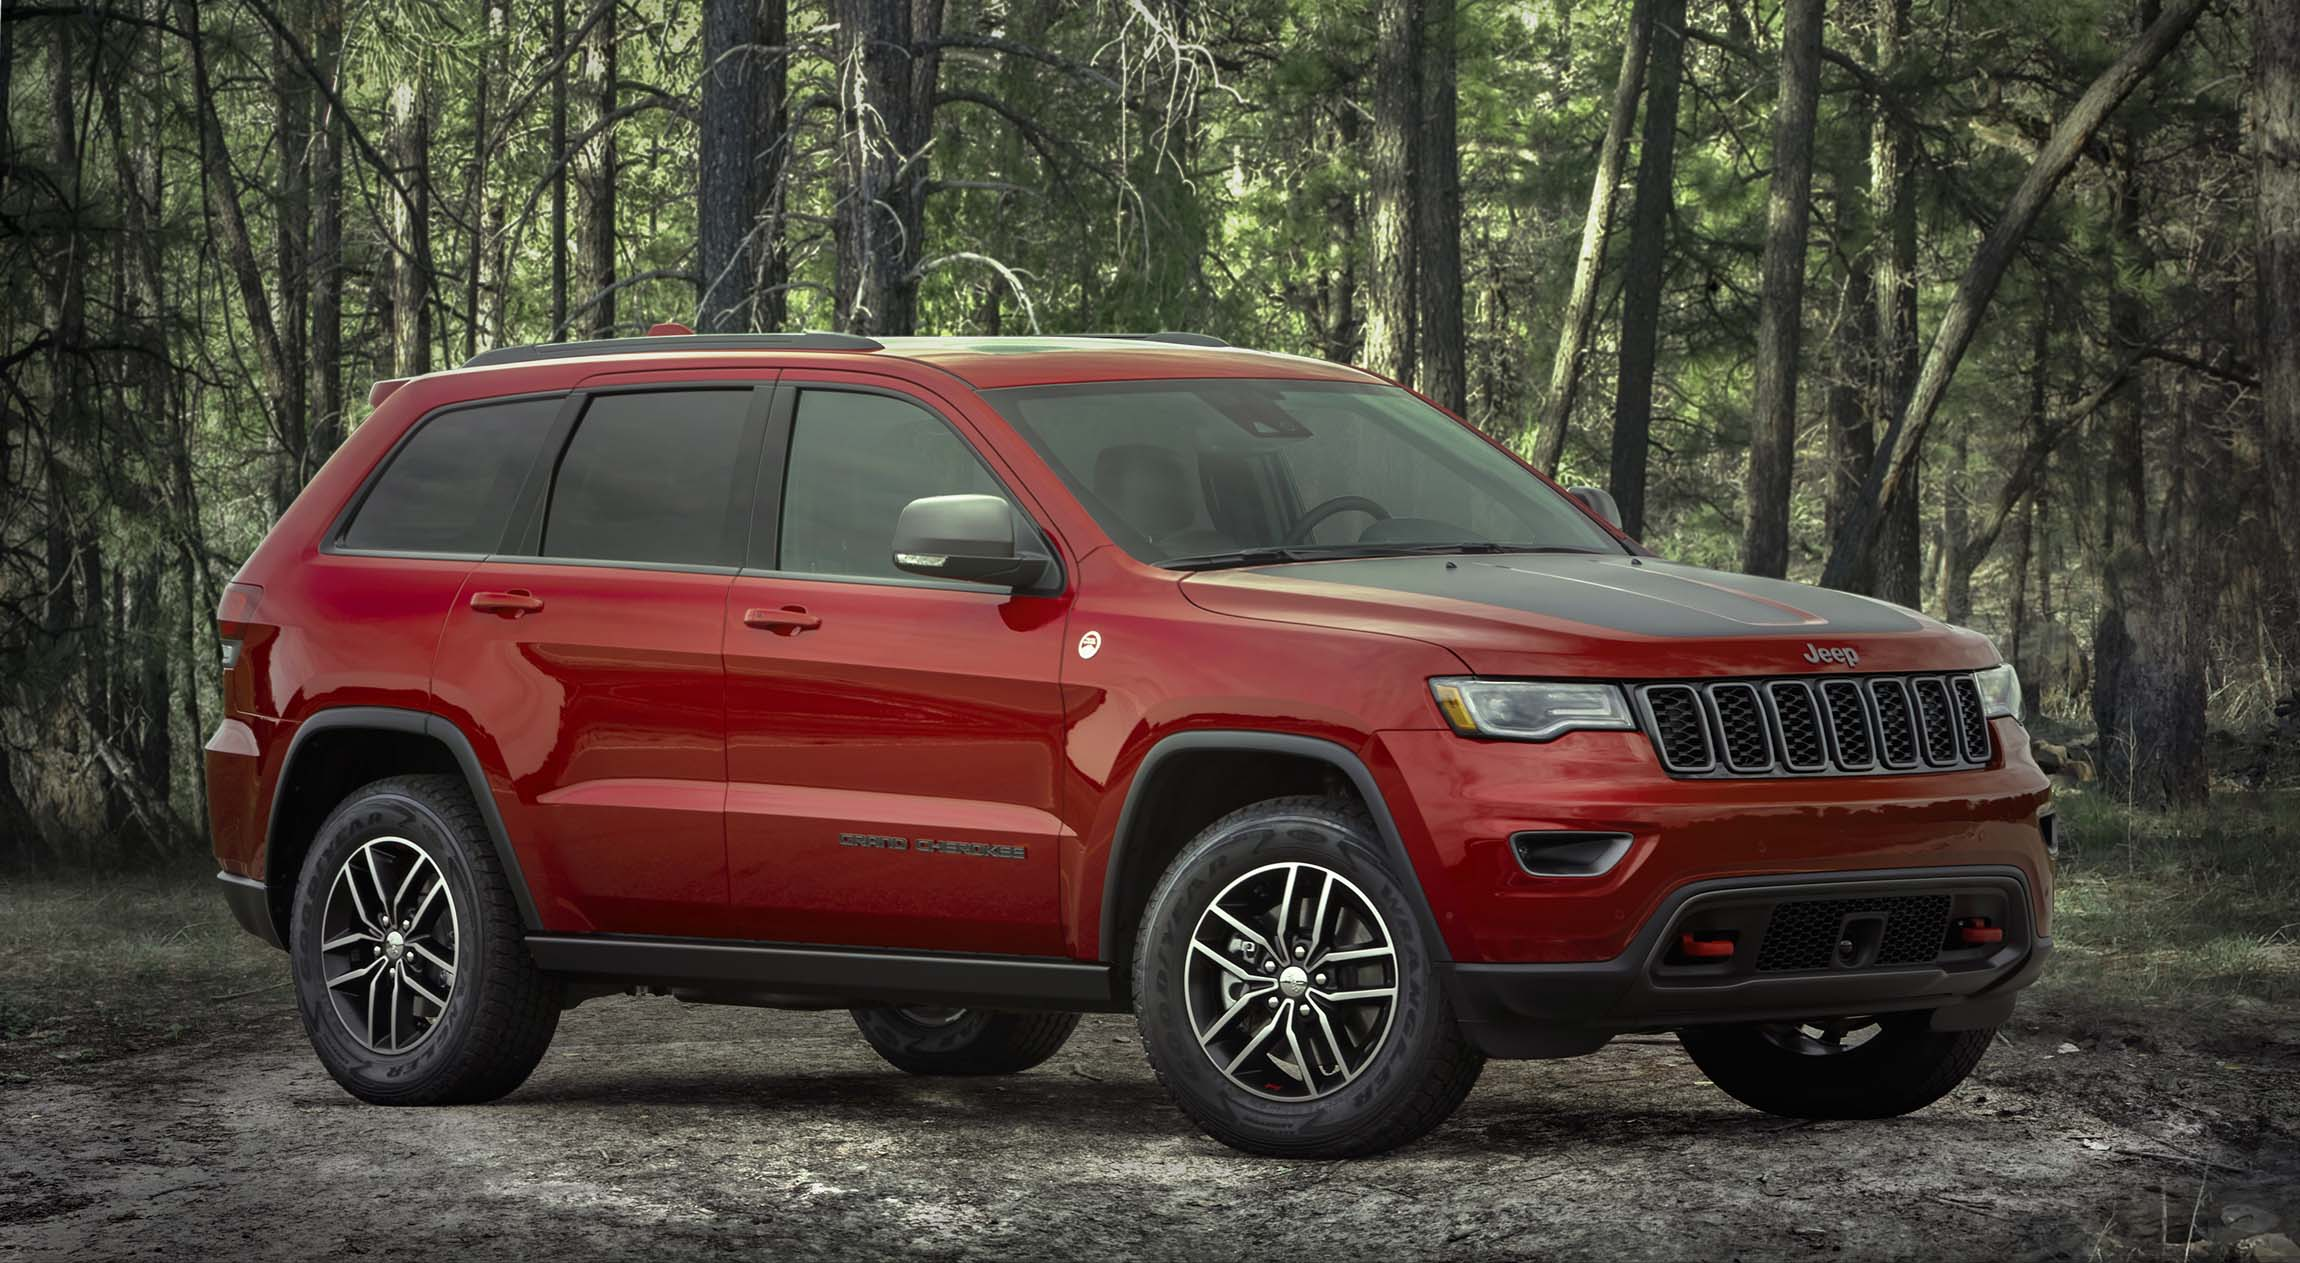 2019 Jeep Grand Cherokee Vs 2019 Chevrolet Blazer